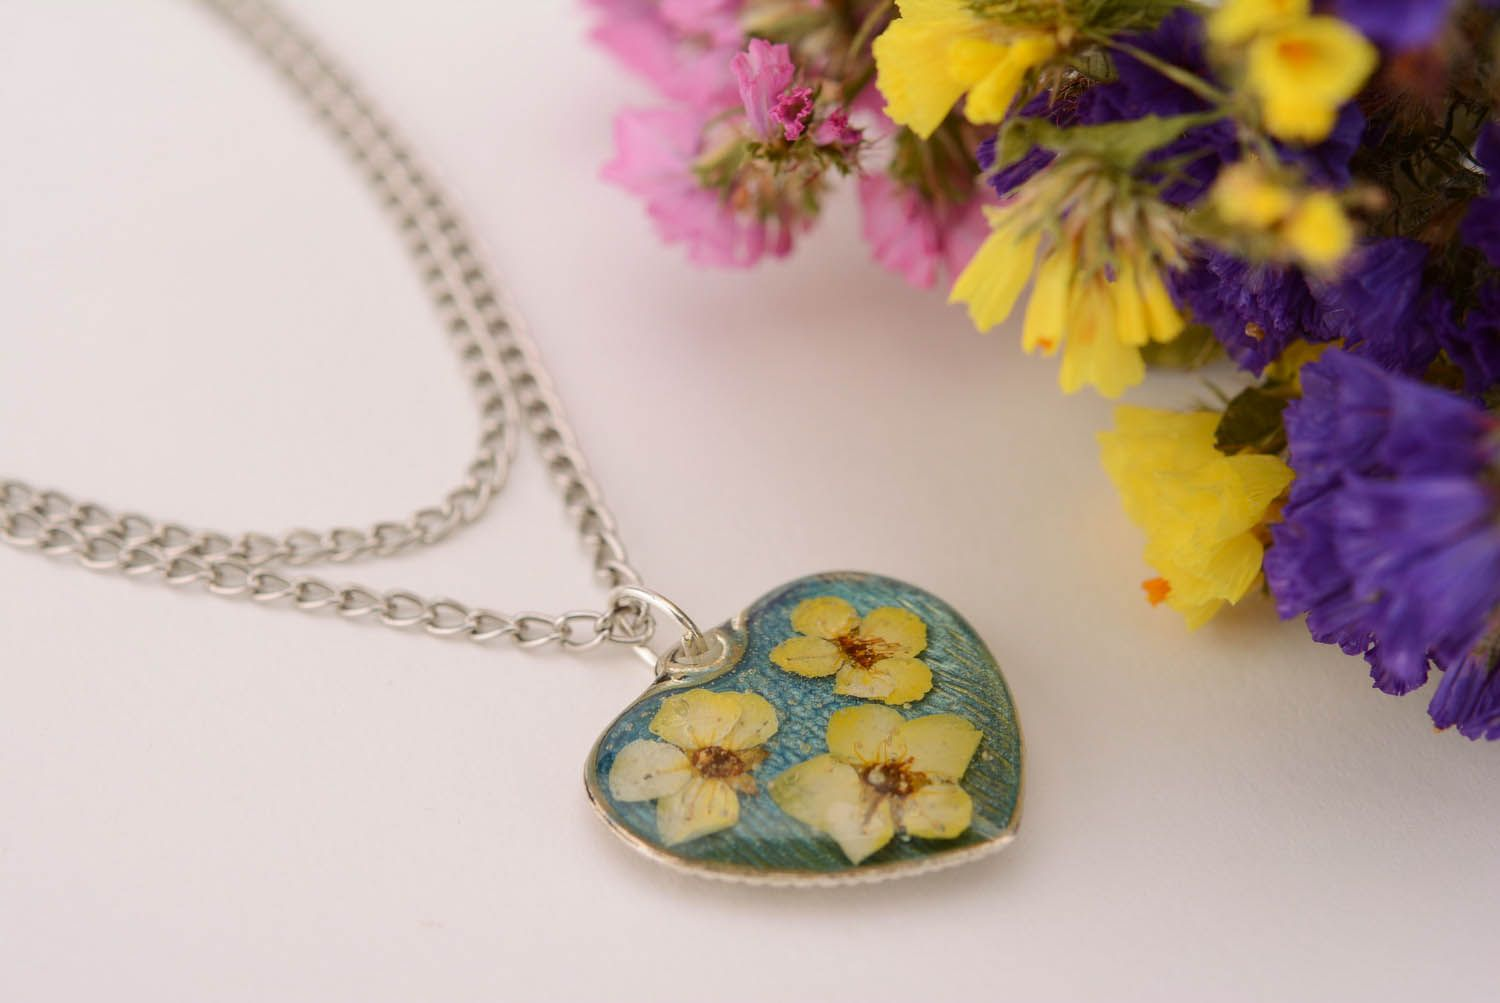 resin jewelry Pendant with a chain